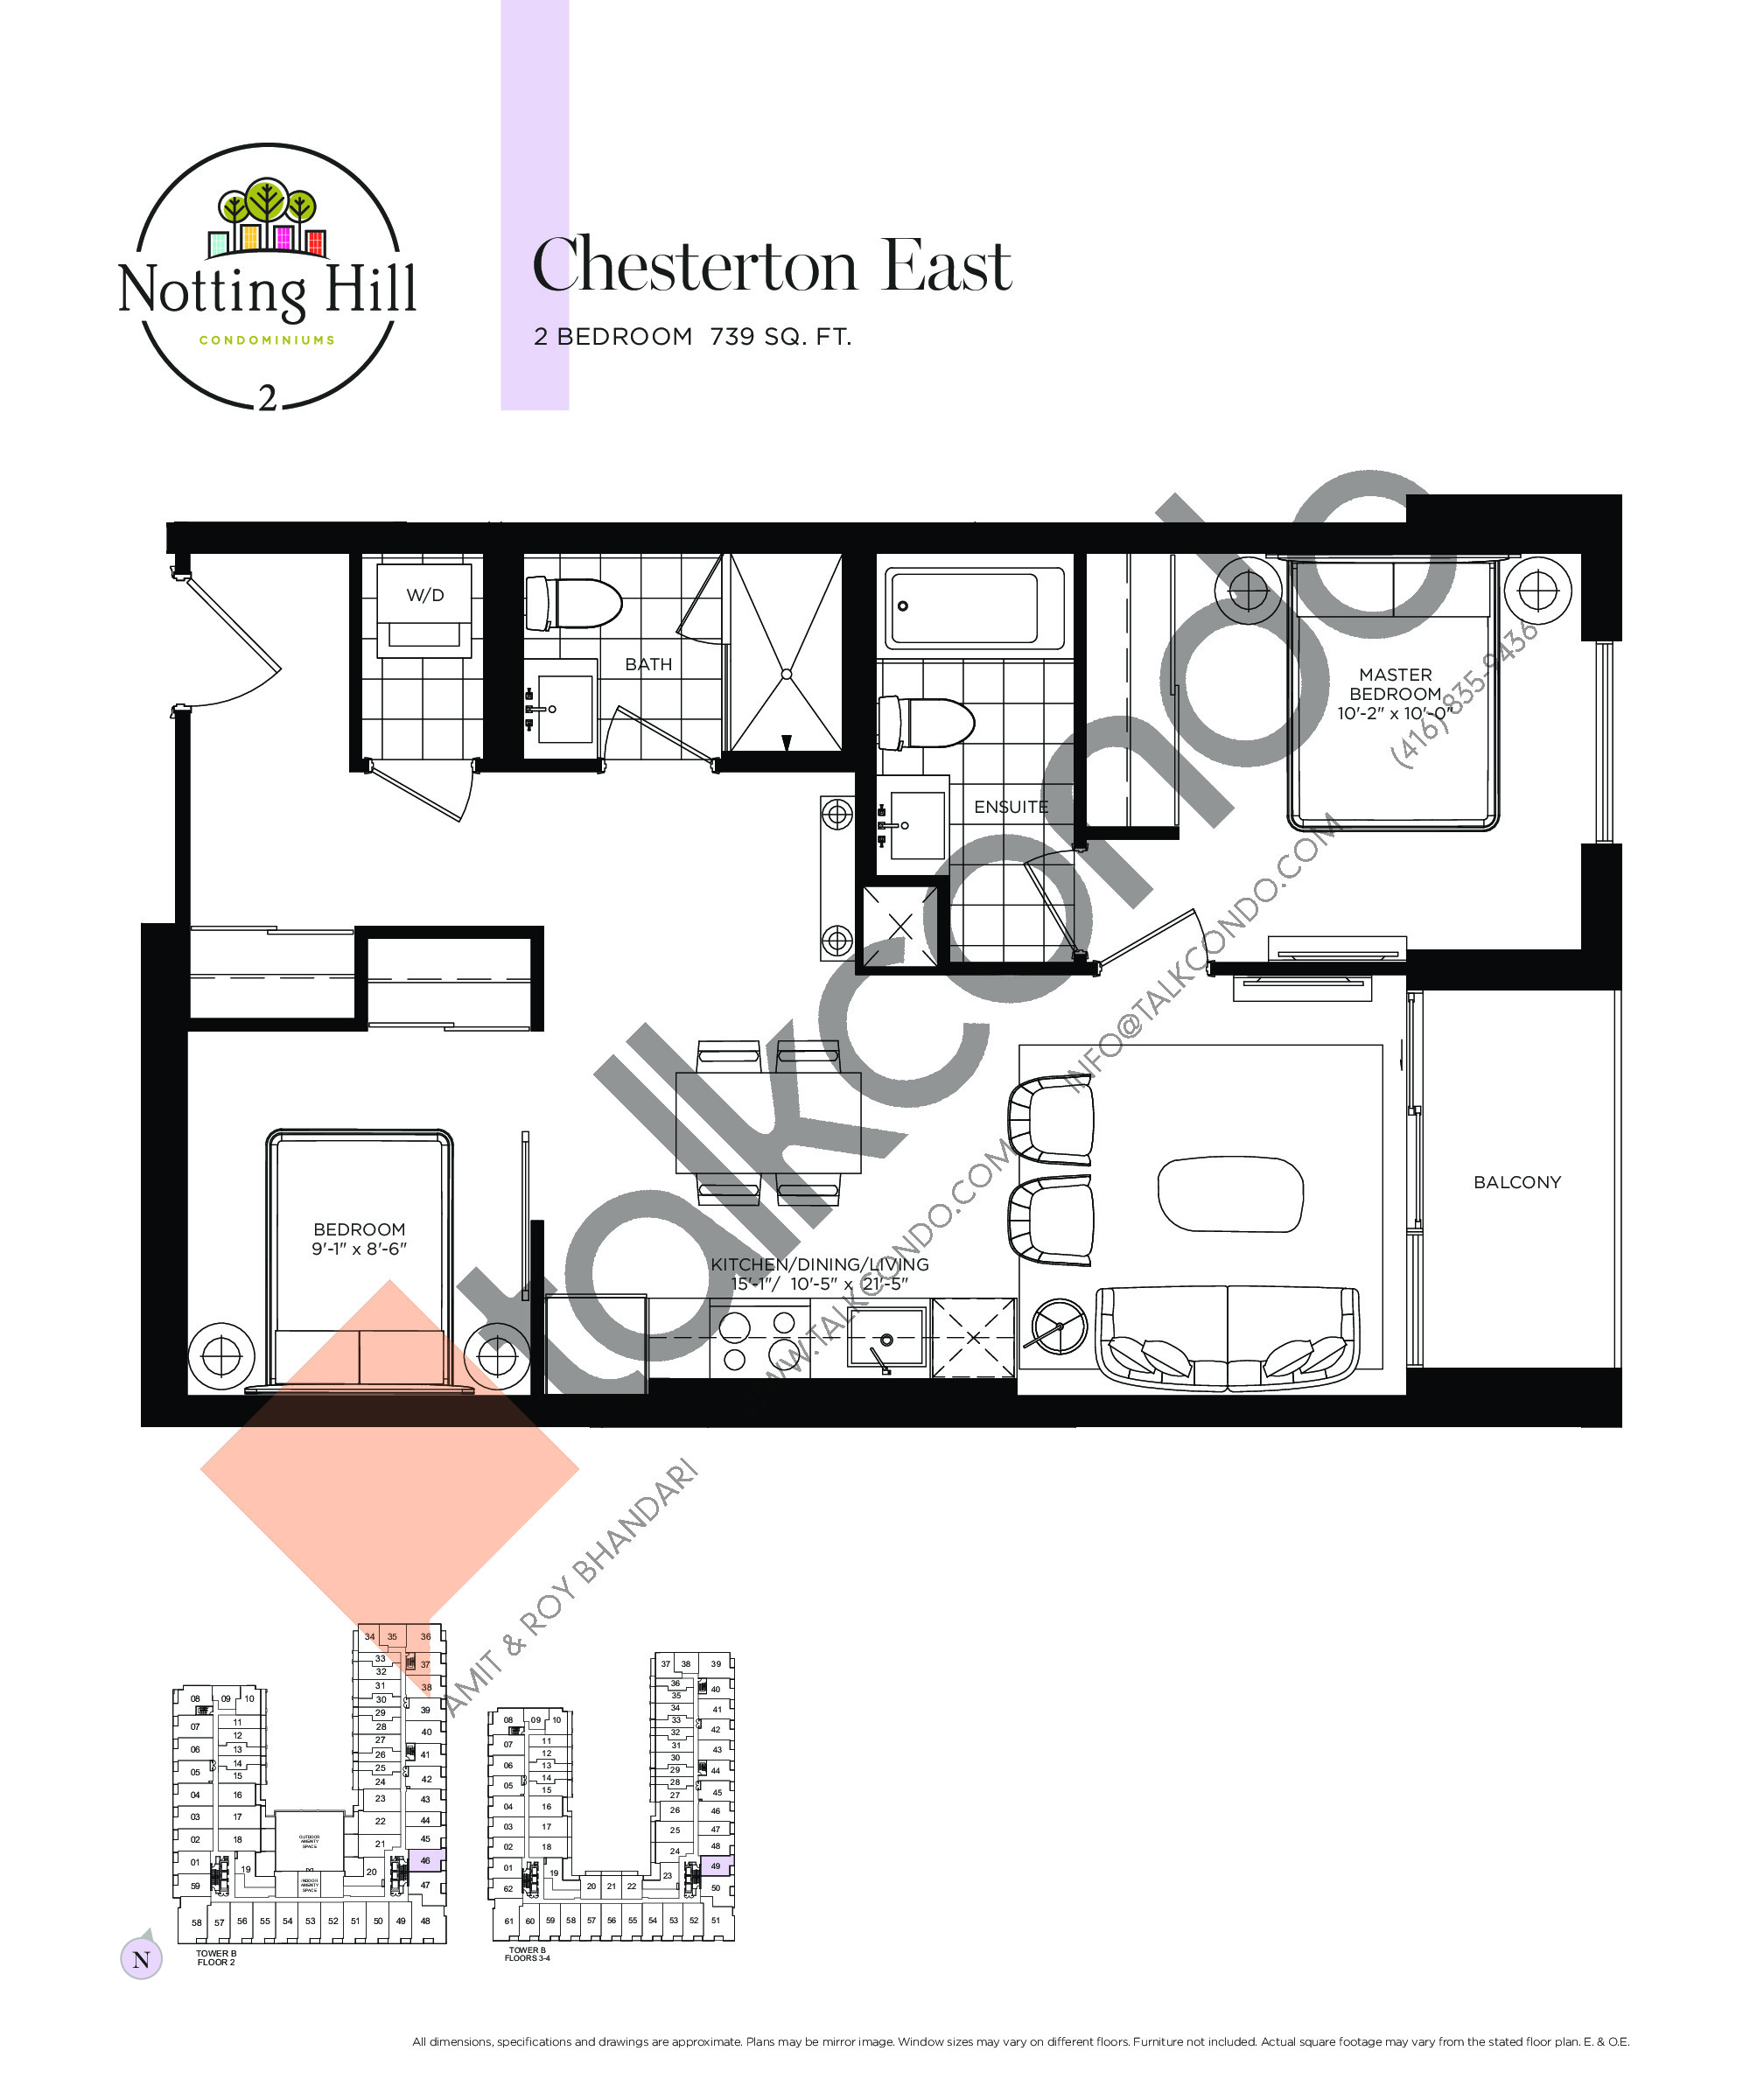 Chesterton East Floor Plan at Notting Hill Phase 3 Condos - 739 sq.ft